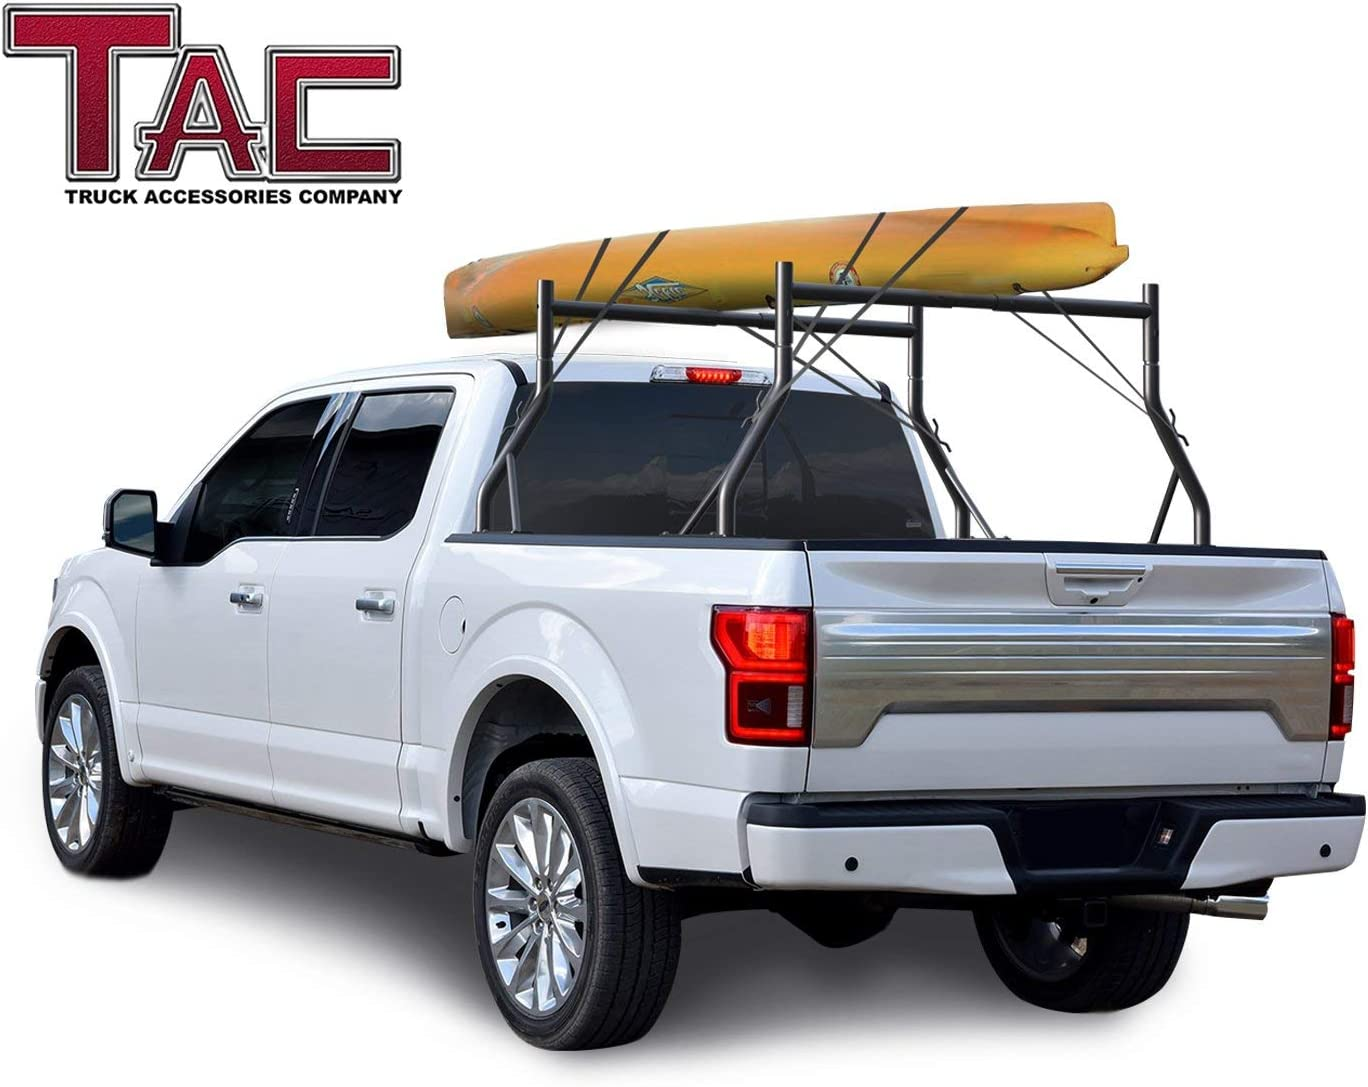 TAC Suitable for Kayak Canoe Boat Truck Bed Ladder Rack Fit 2009-2020 Dodge RAM 2 Bars Adjustable Pick up Rack 500 LBS Capacity Utility Contractor Ladder Pipes Lumber Cargo Carrier